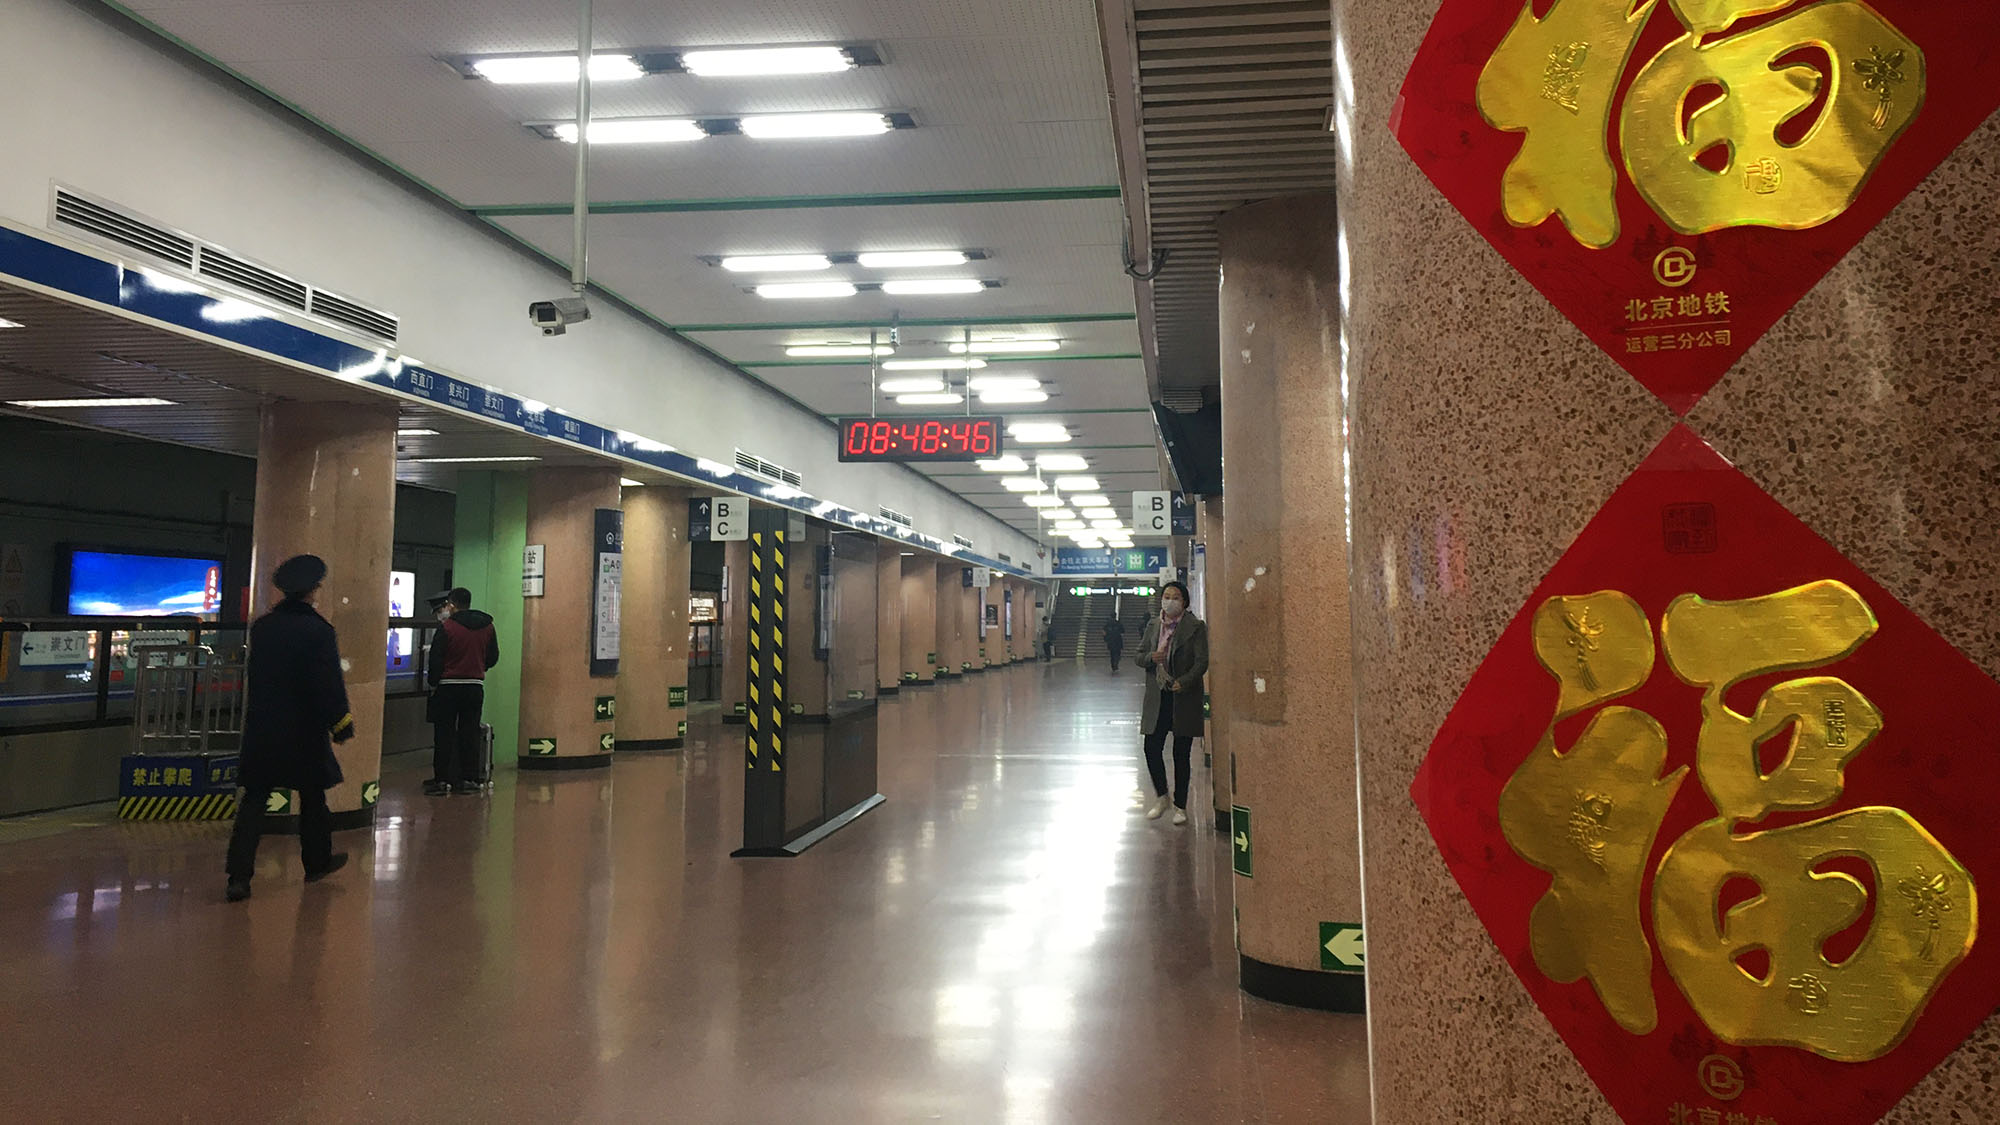 A Beijing subway station during the coronavirus outbreak.